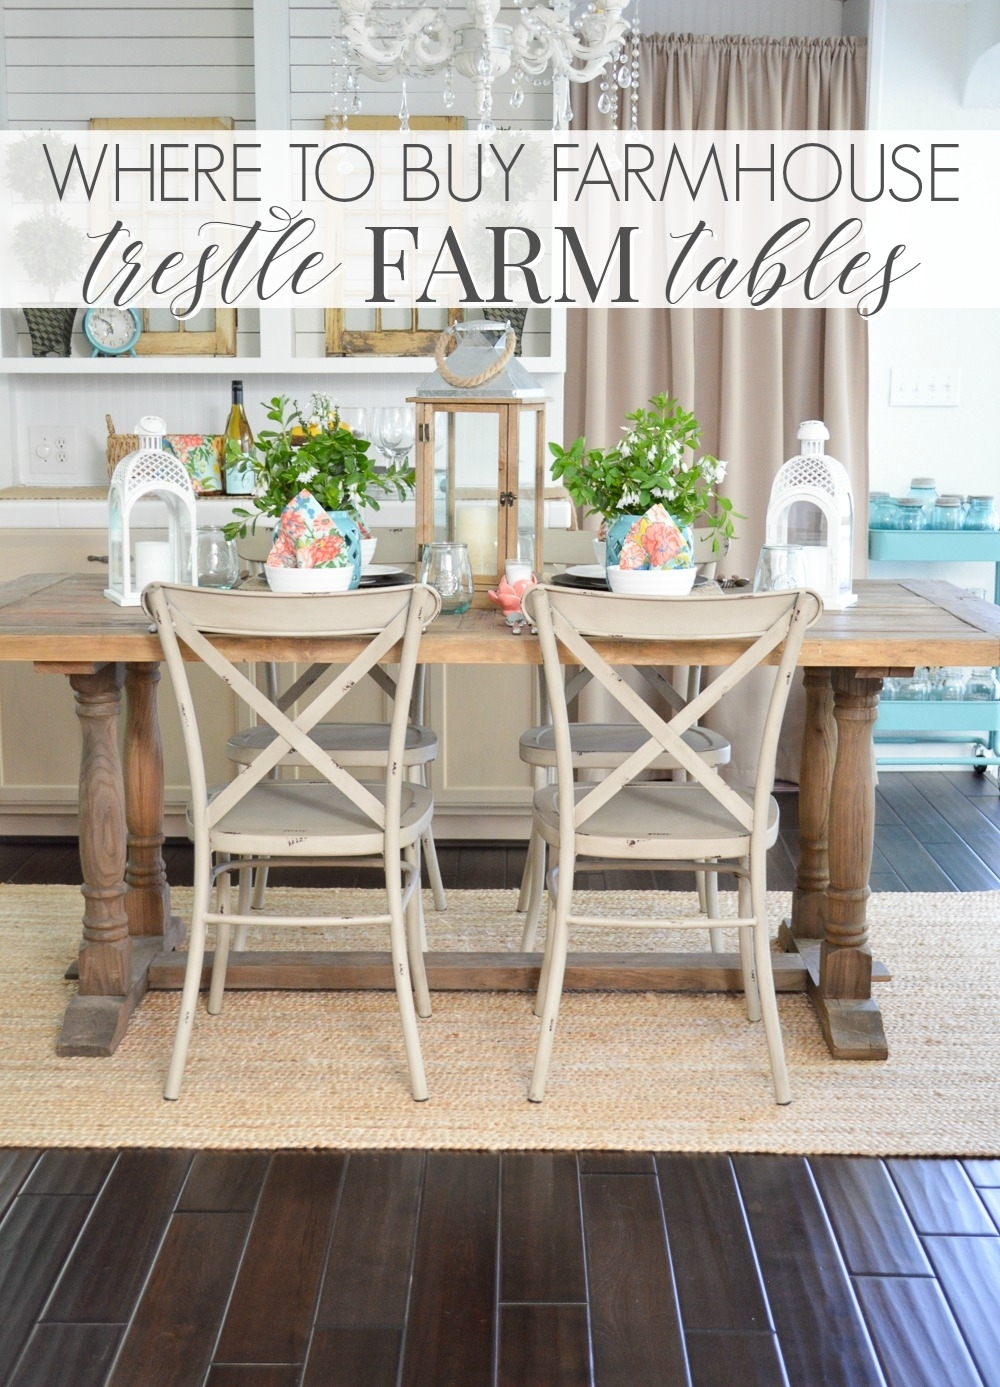 Where To Buy A Farmhouse Trestle Style Farm Table – Fox Hollow Cottage Inside Most Popular Farm Dining Tables (View 13 of 20)